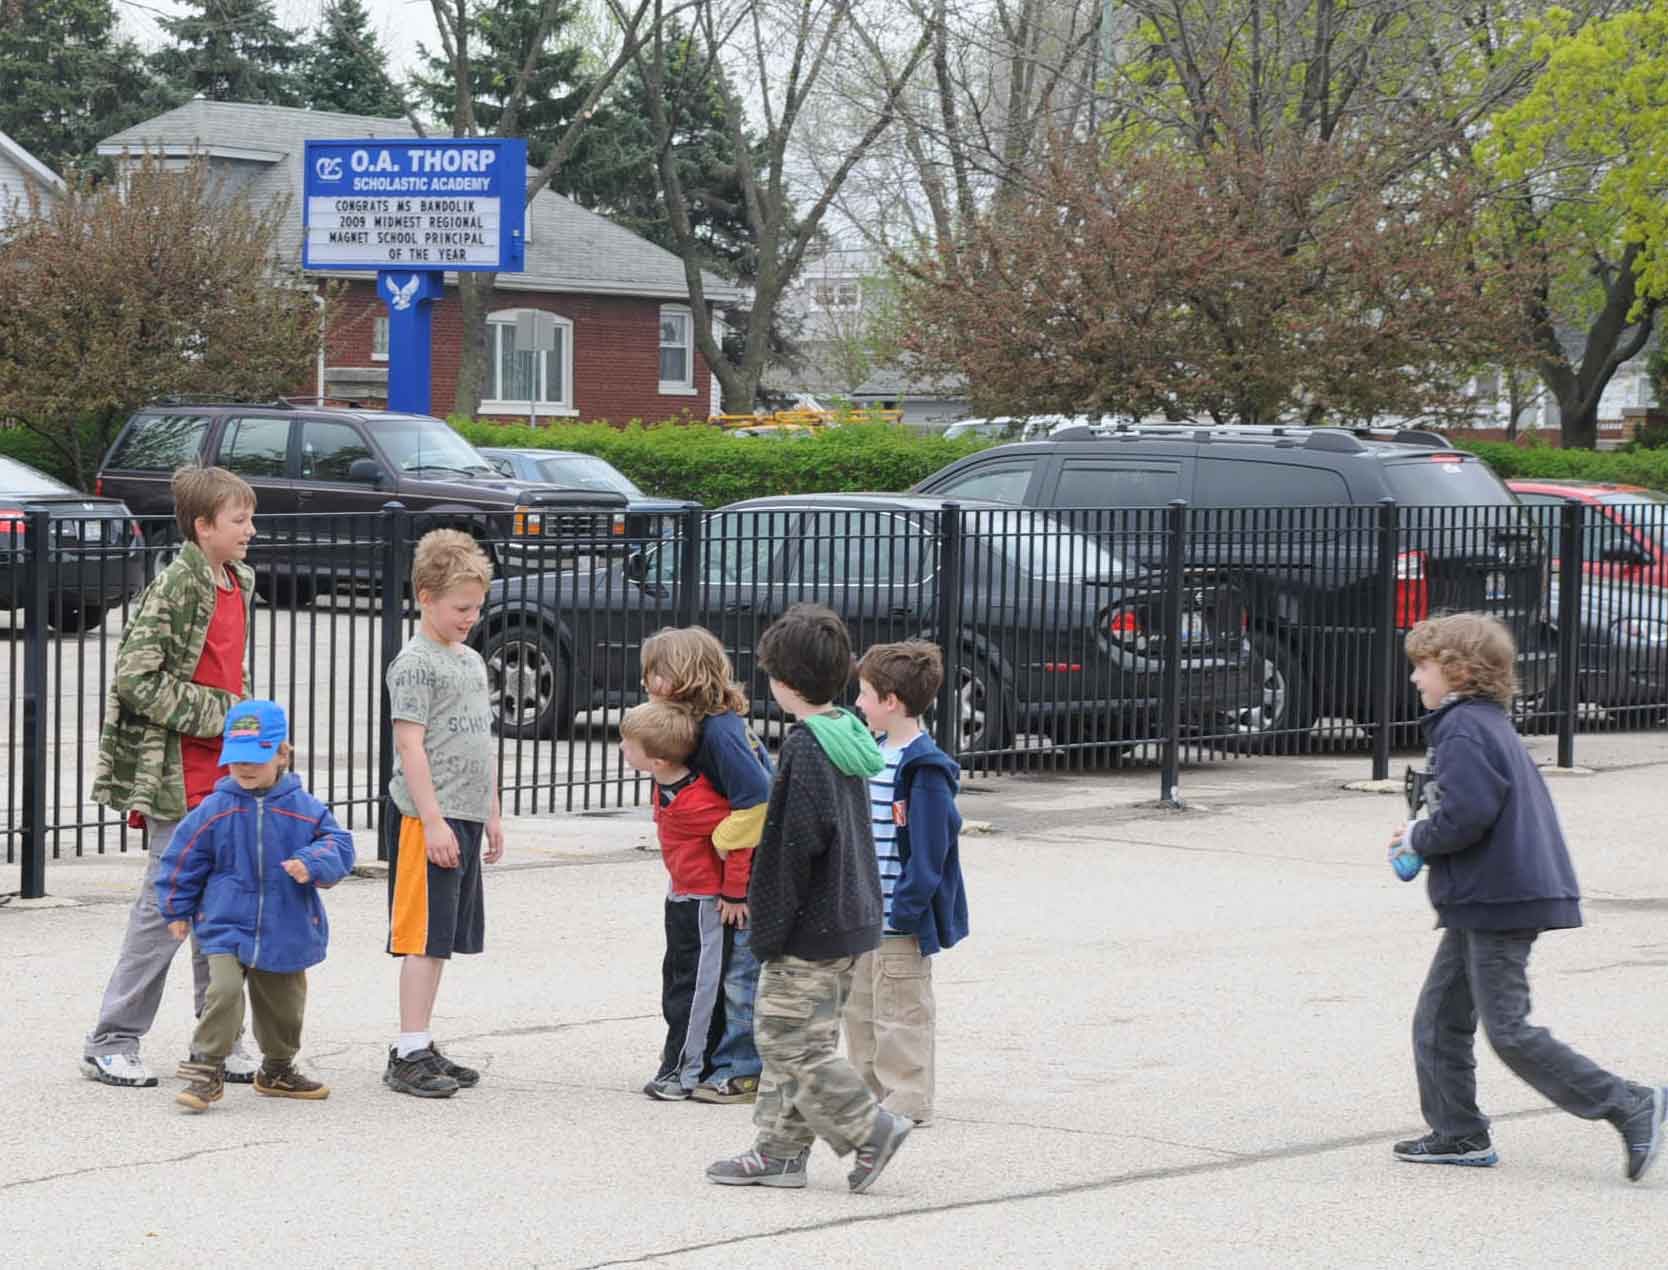 Boys from O.A. Thorp playing after school in April 2009. Substance photo by George N. Schmidt.